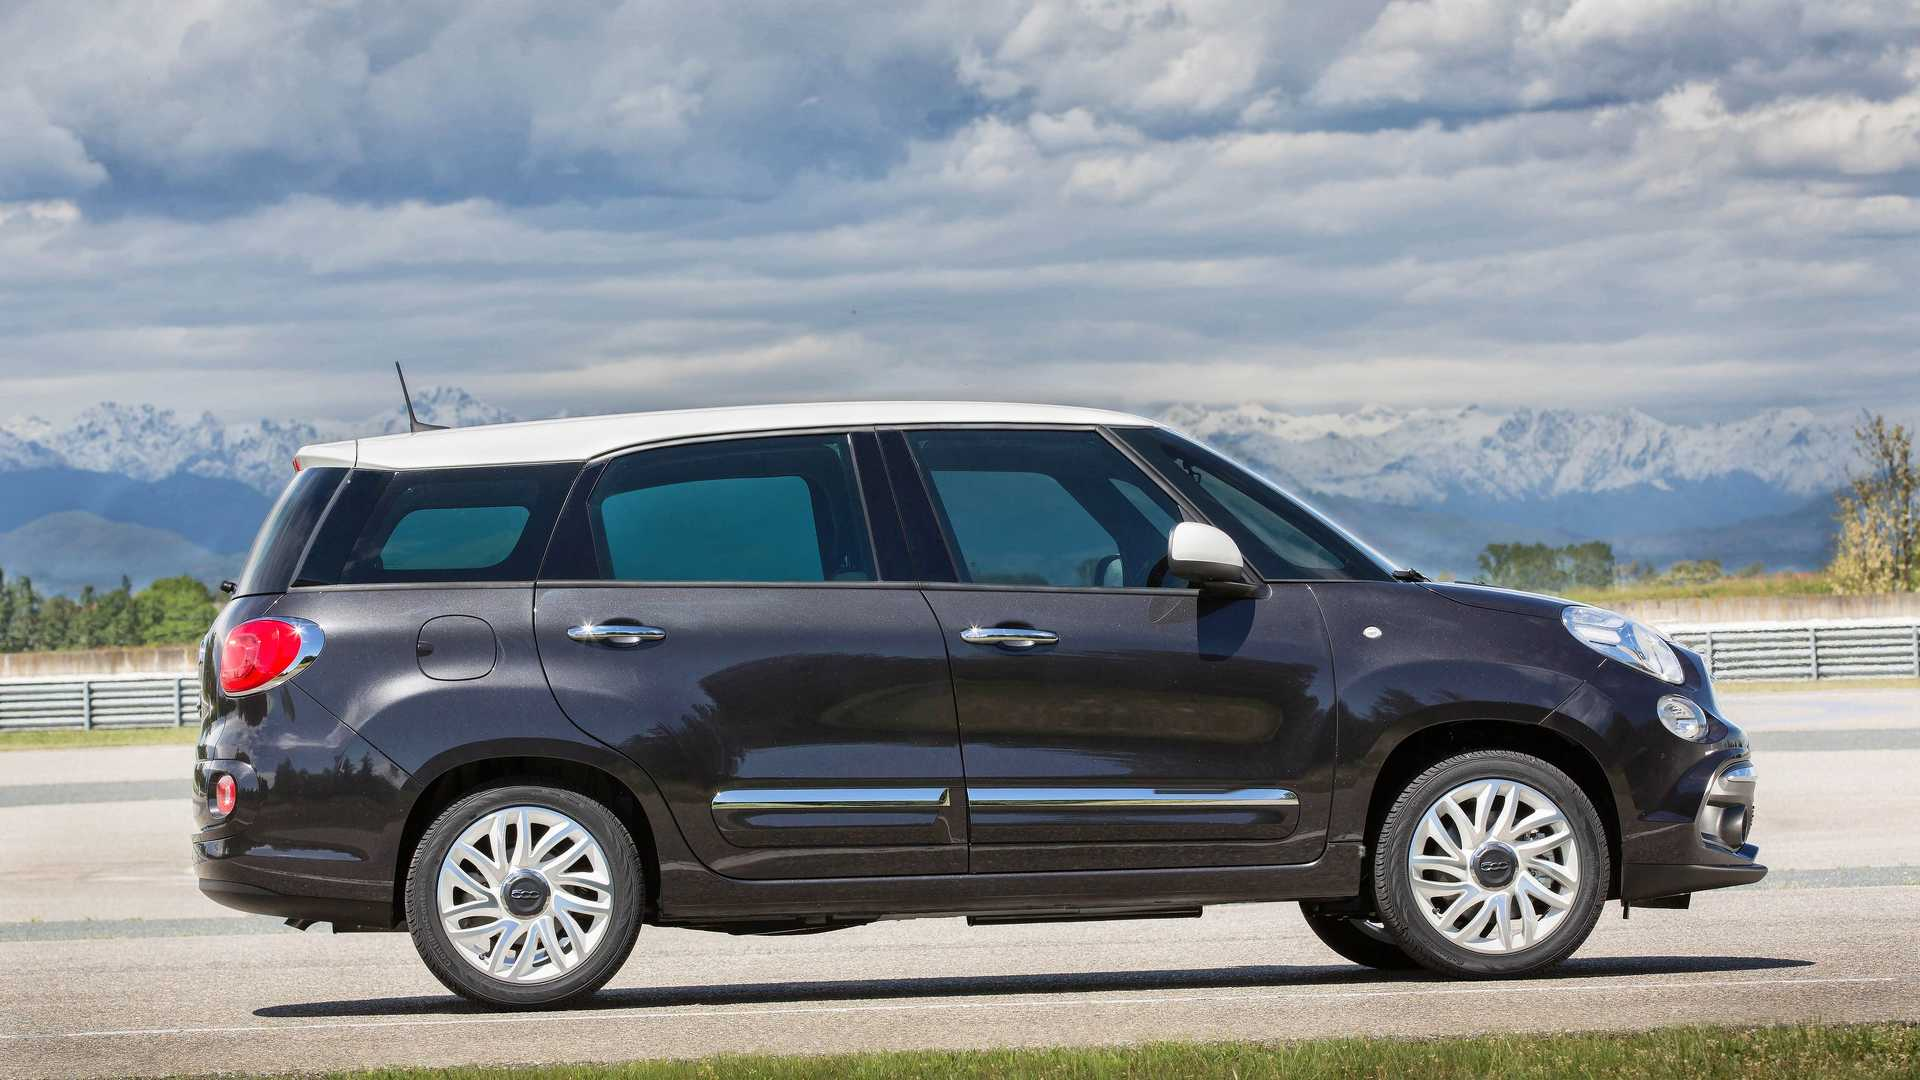 2018_Fiat_500L_wagon_facelift_06